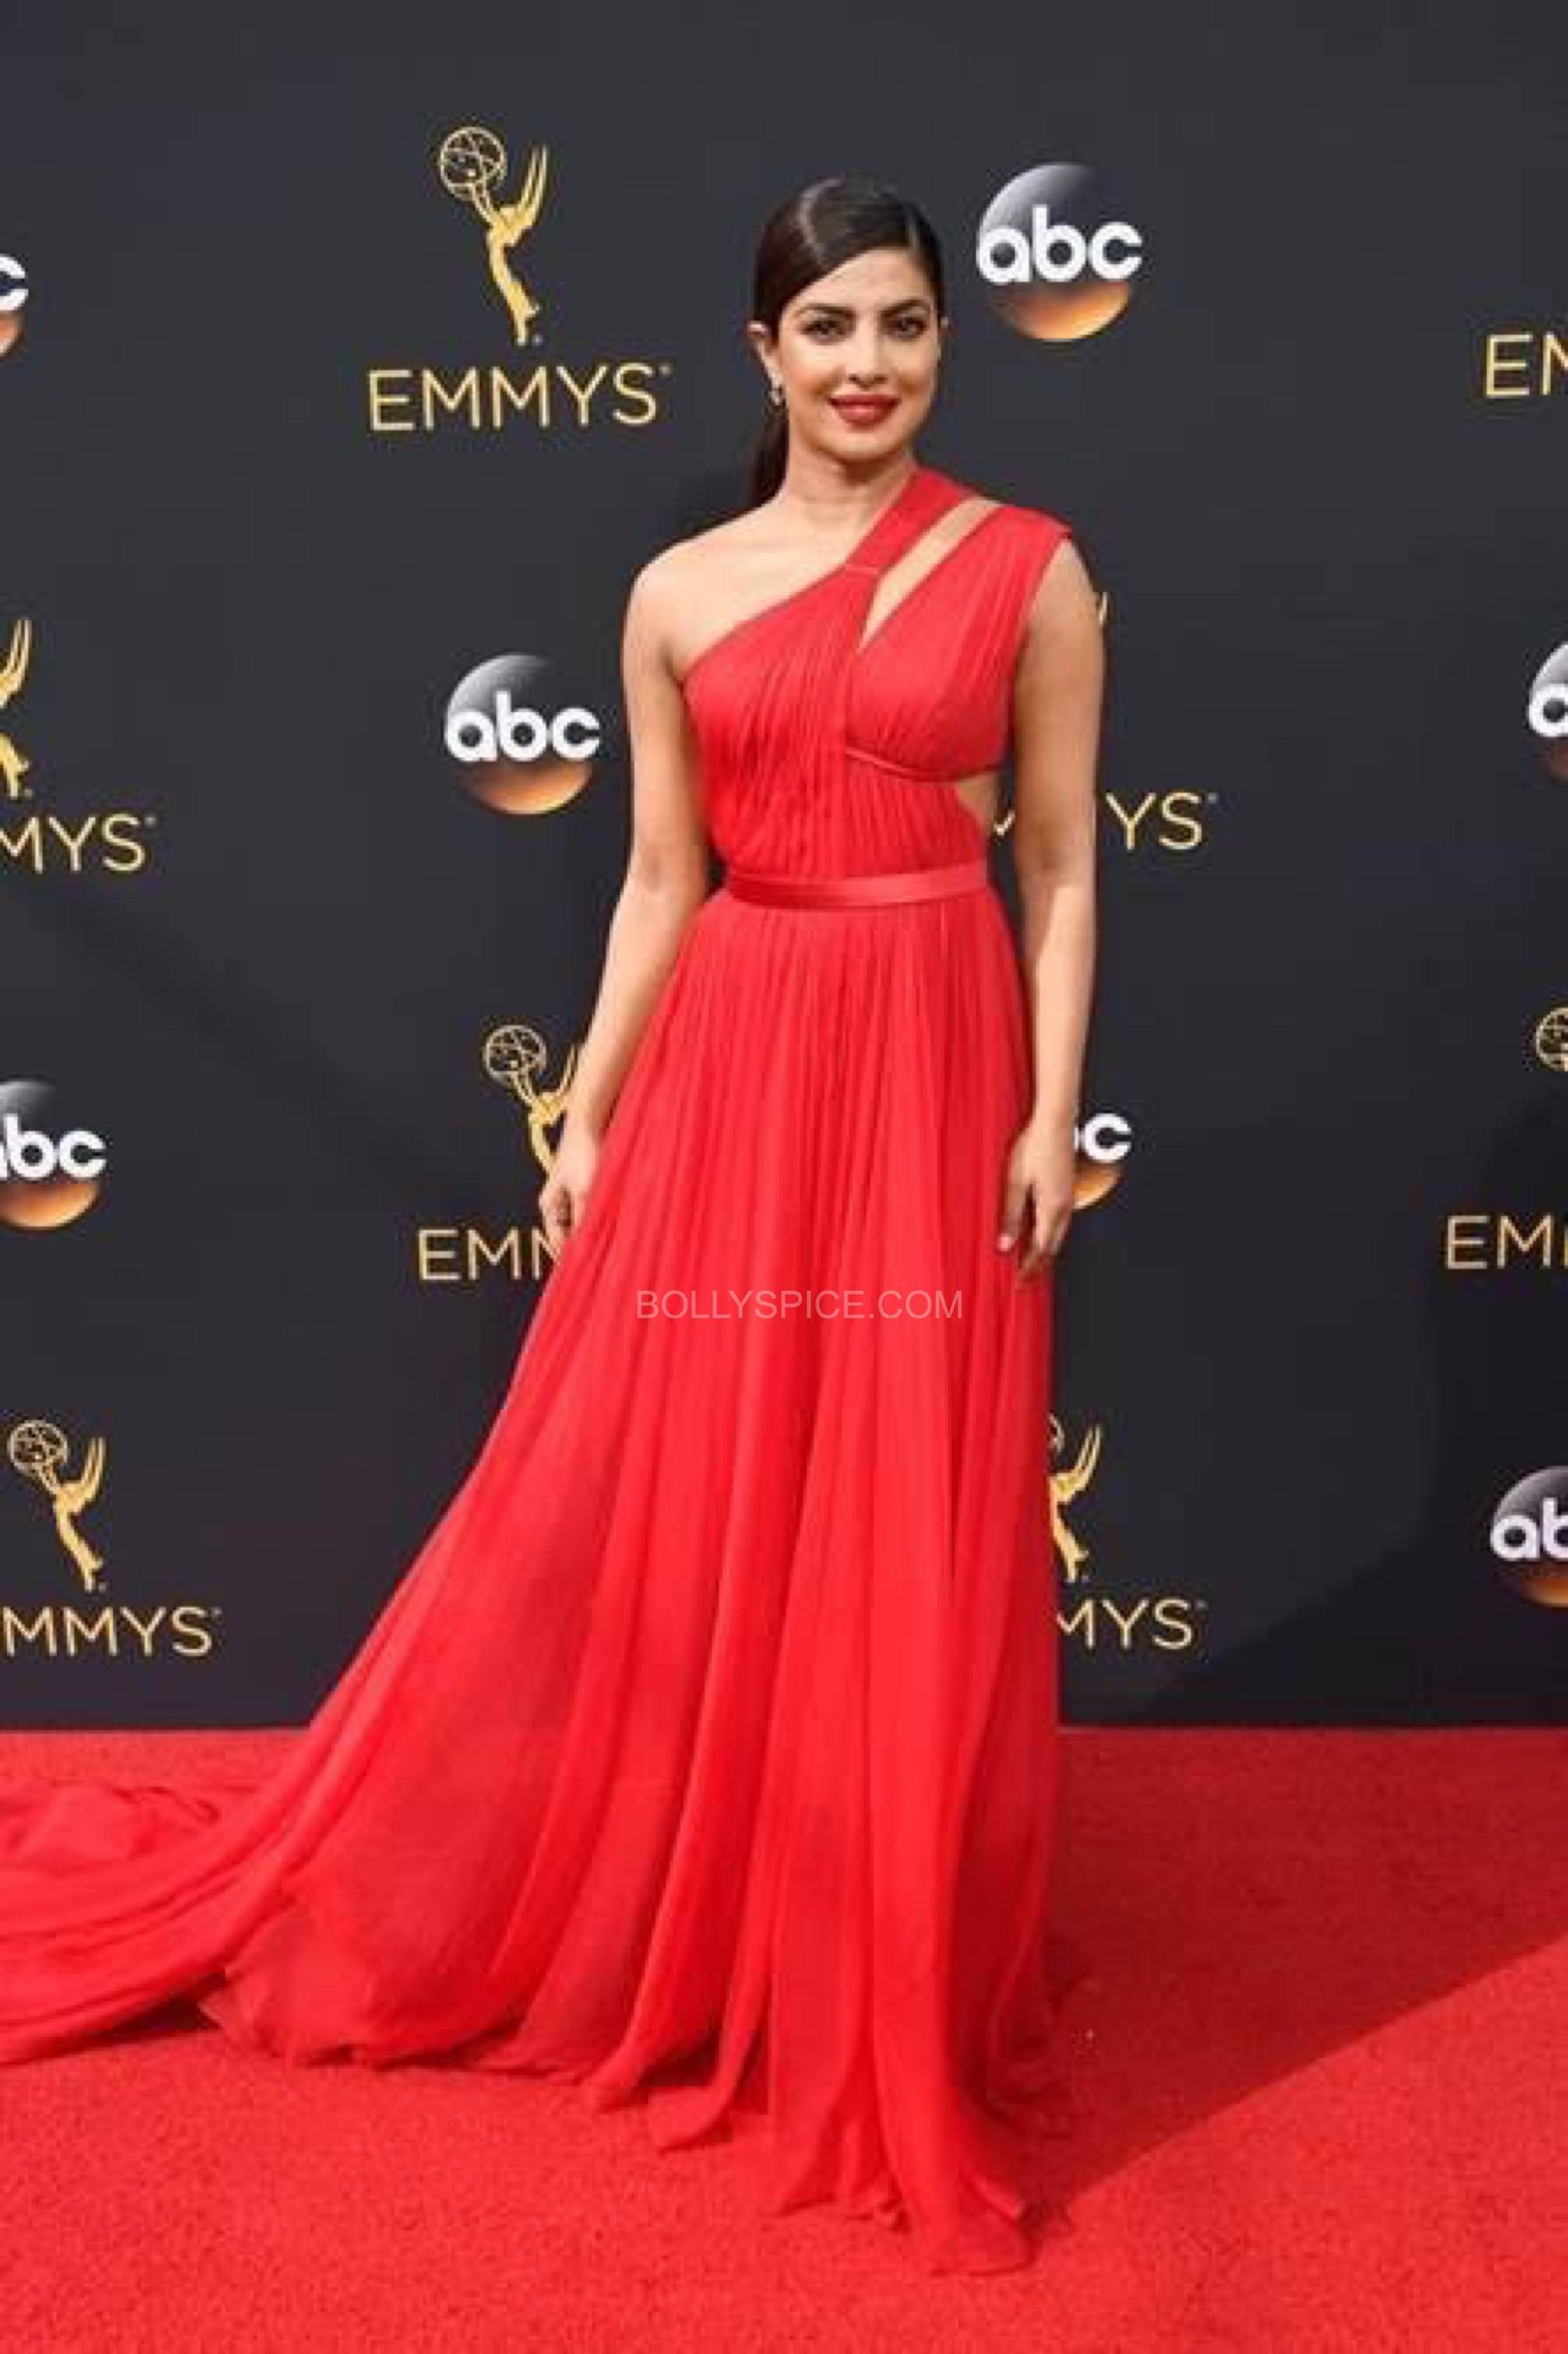 priyanka0chopra-red-dress-emmeys-2106-3